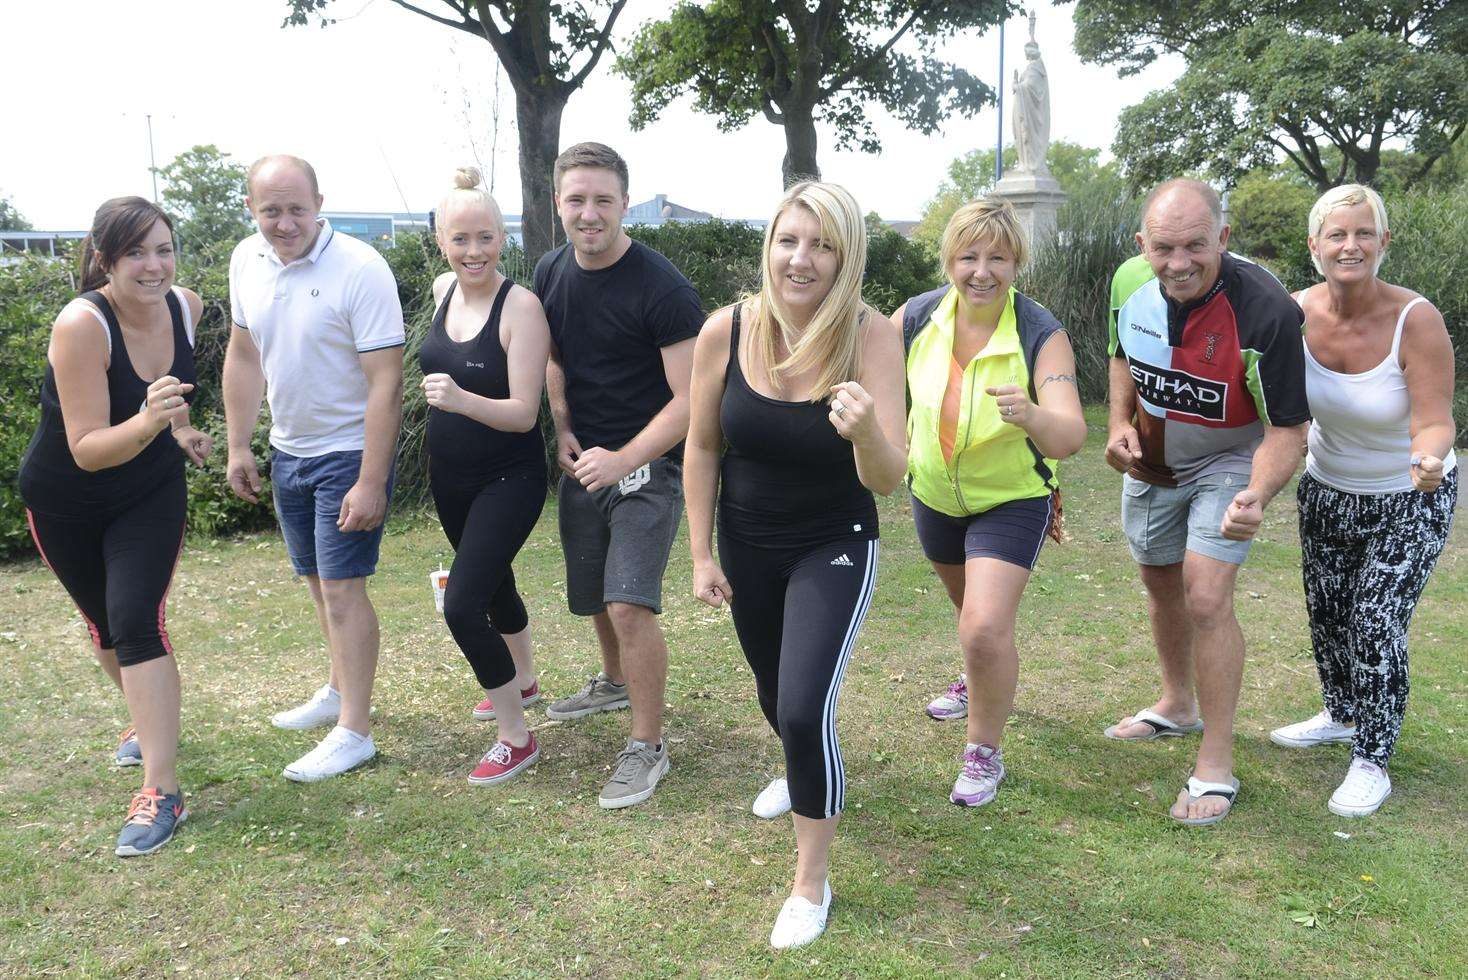 Carla Goodwin with family and friends who are doing a charity run in aid of Asthma UK in memory of her son Joshua